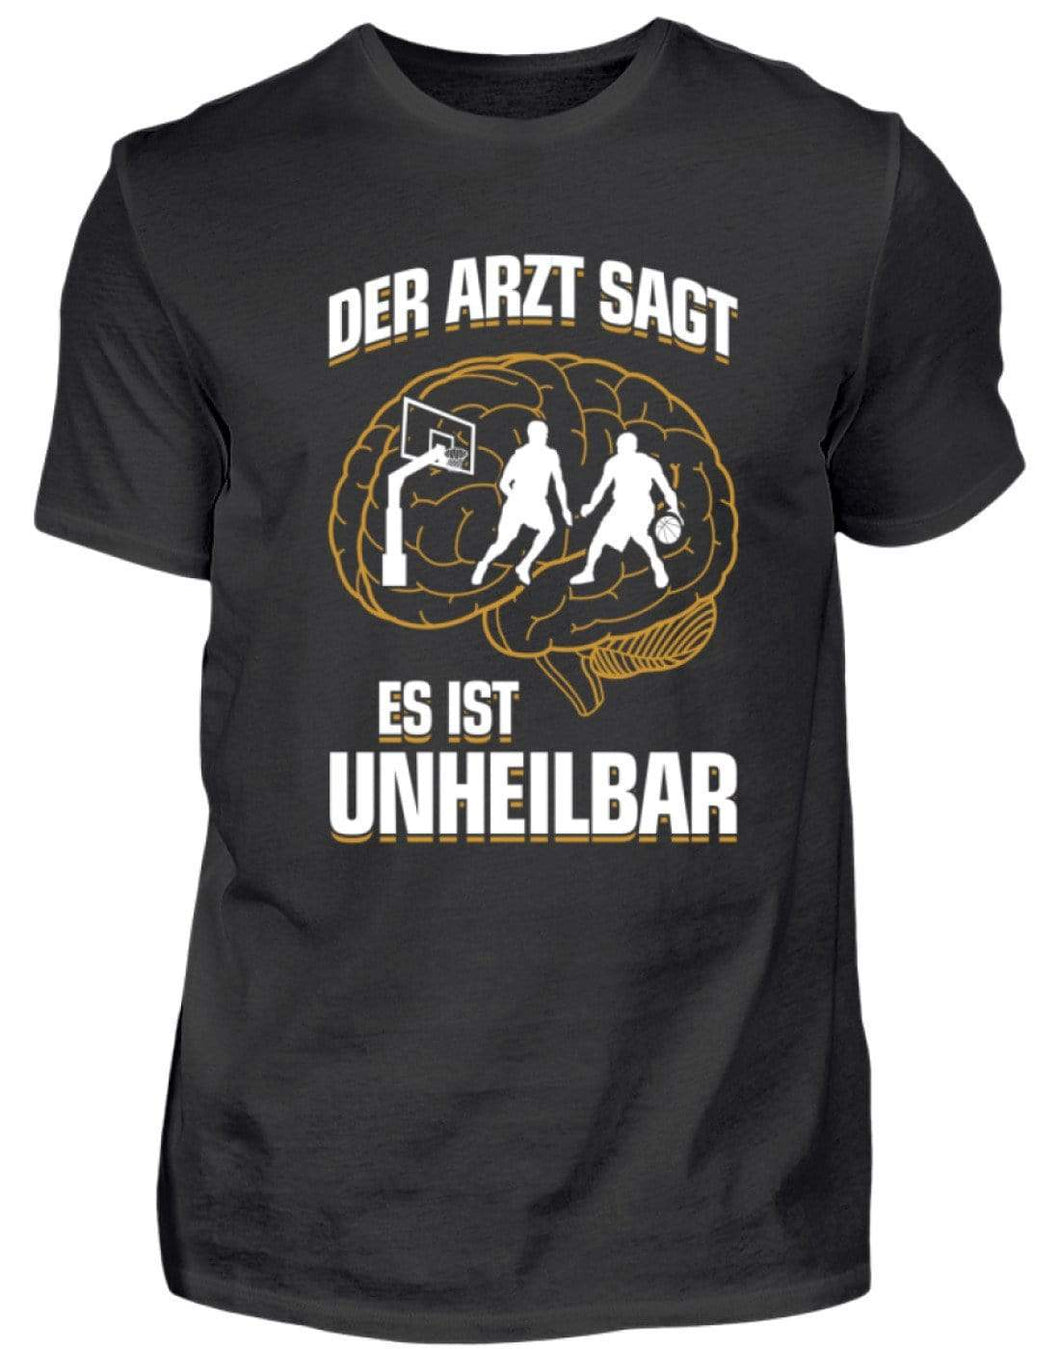 Herren Basic T-Shirt Black / S Basketball: ...es ist unheilbar  - Herren Shirt (4362276798516)